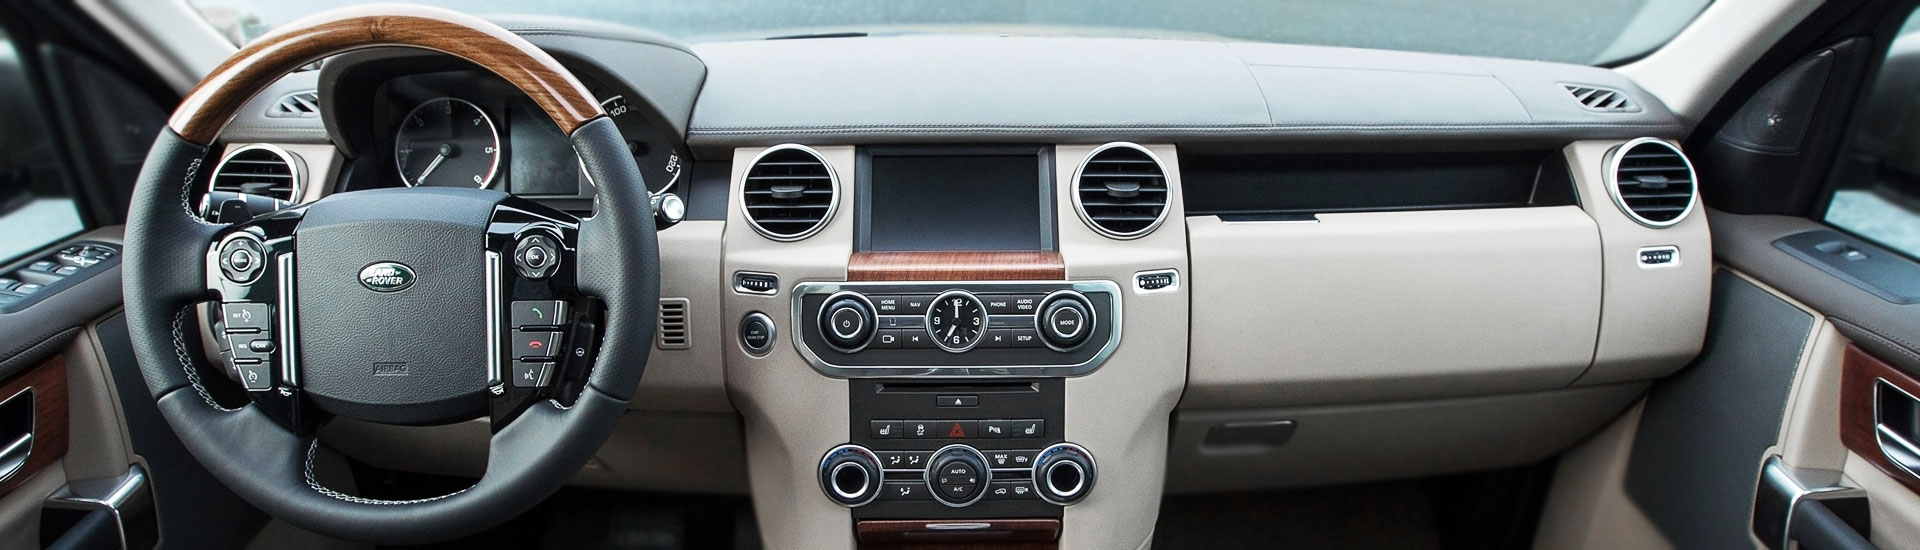 2003 Land Rover Range Rover Custom Dash Kits